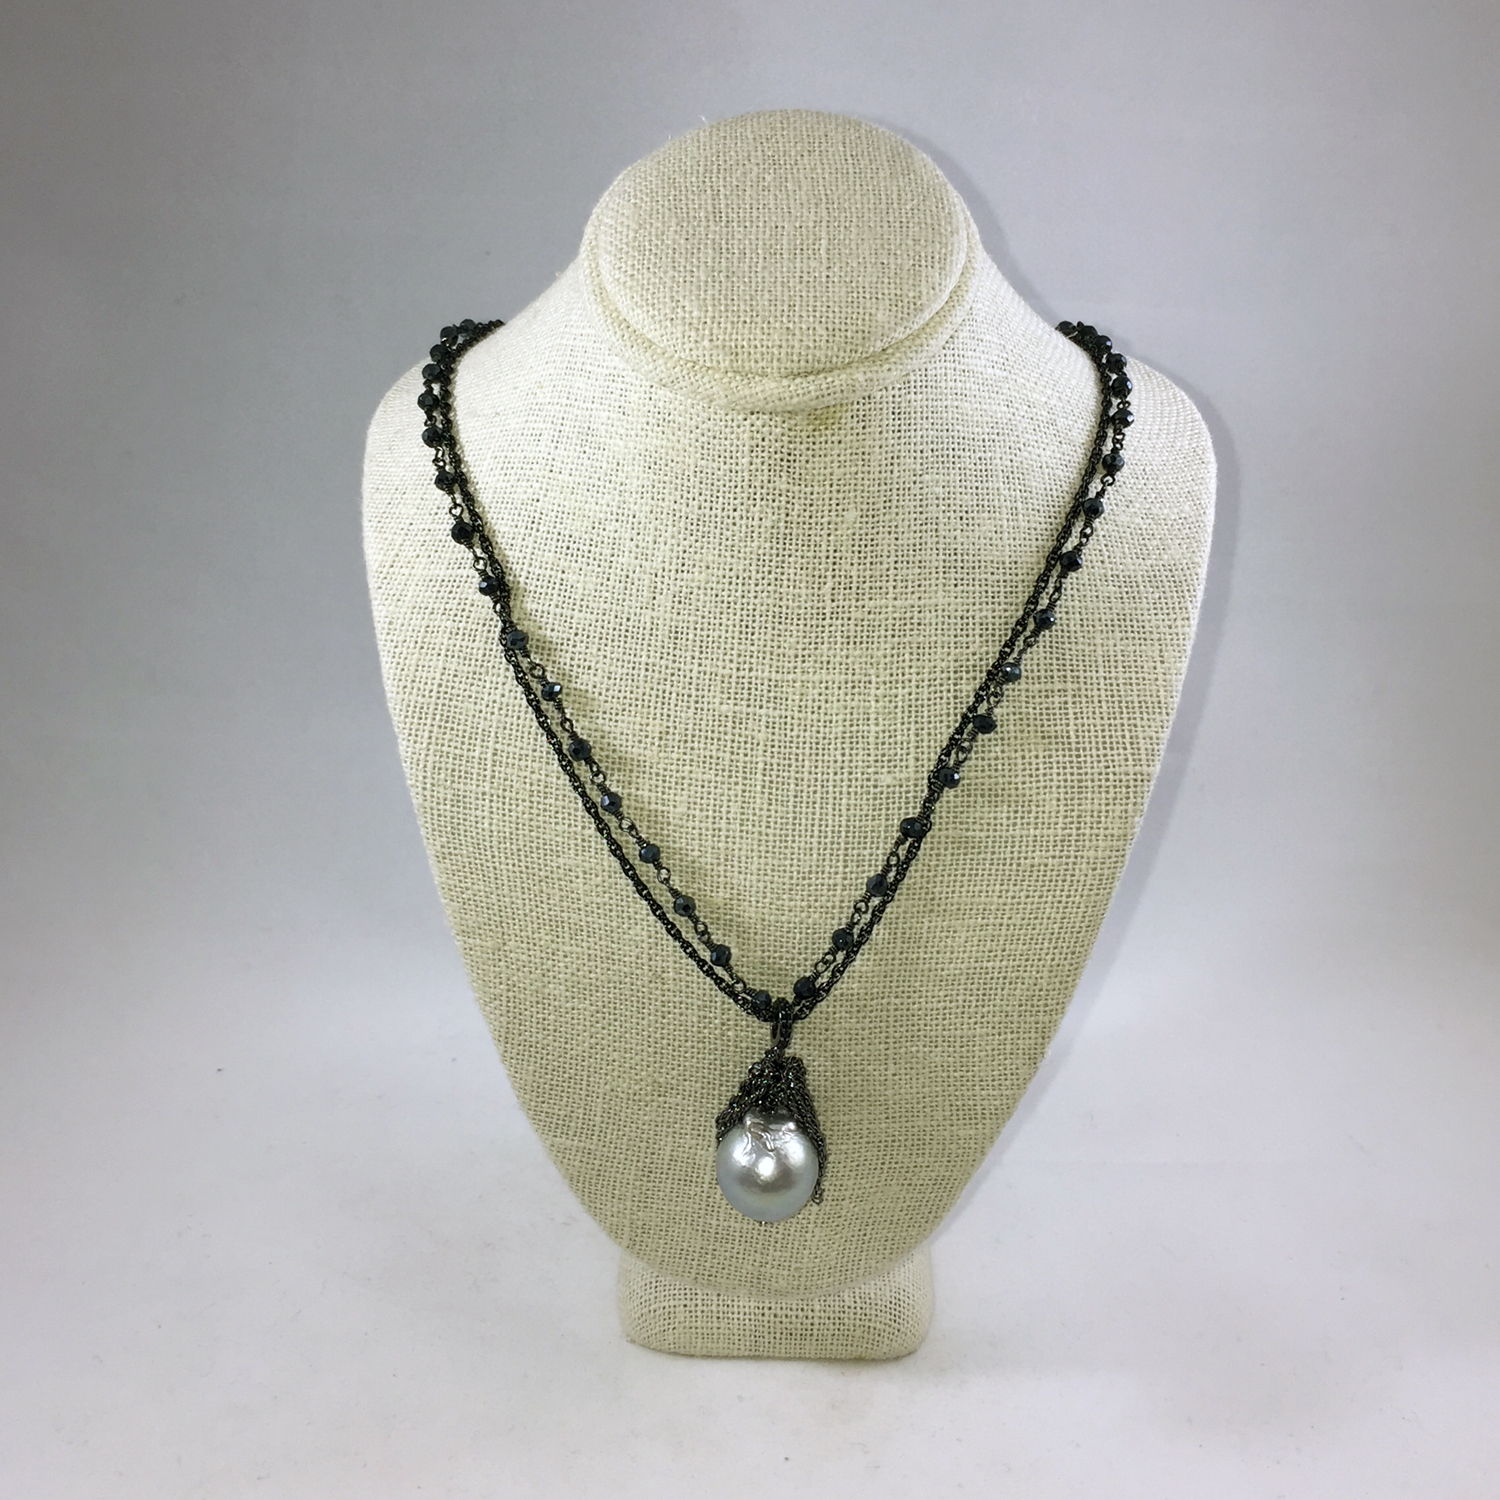 takshe Black necklace.jpg